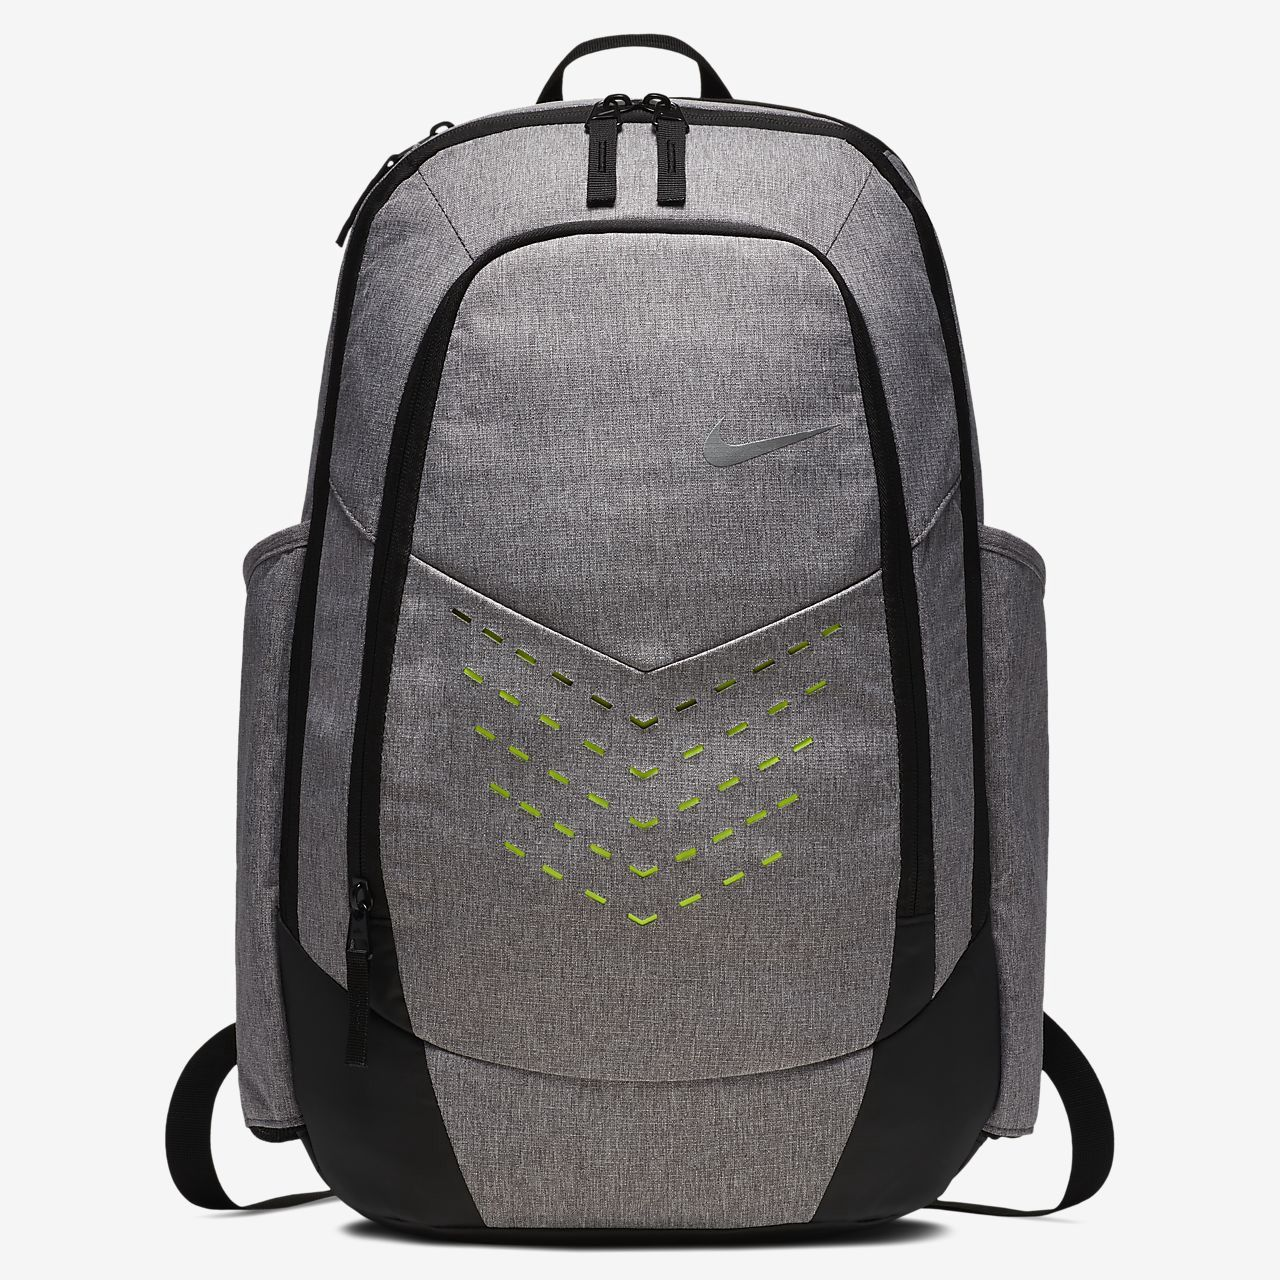 ... Bags Training Neopark Backpack School C  san francisco a00ec 5a5eb  ADIDAS FARM GIRLS BACKPACK  the best attitude 7c816 b172e Nike Vapor Energy  Training ... cf043116ed904